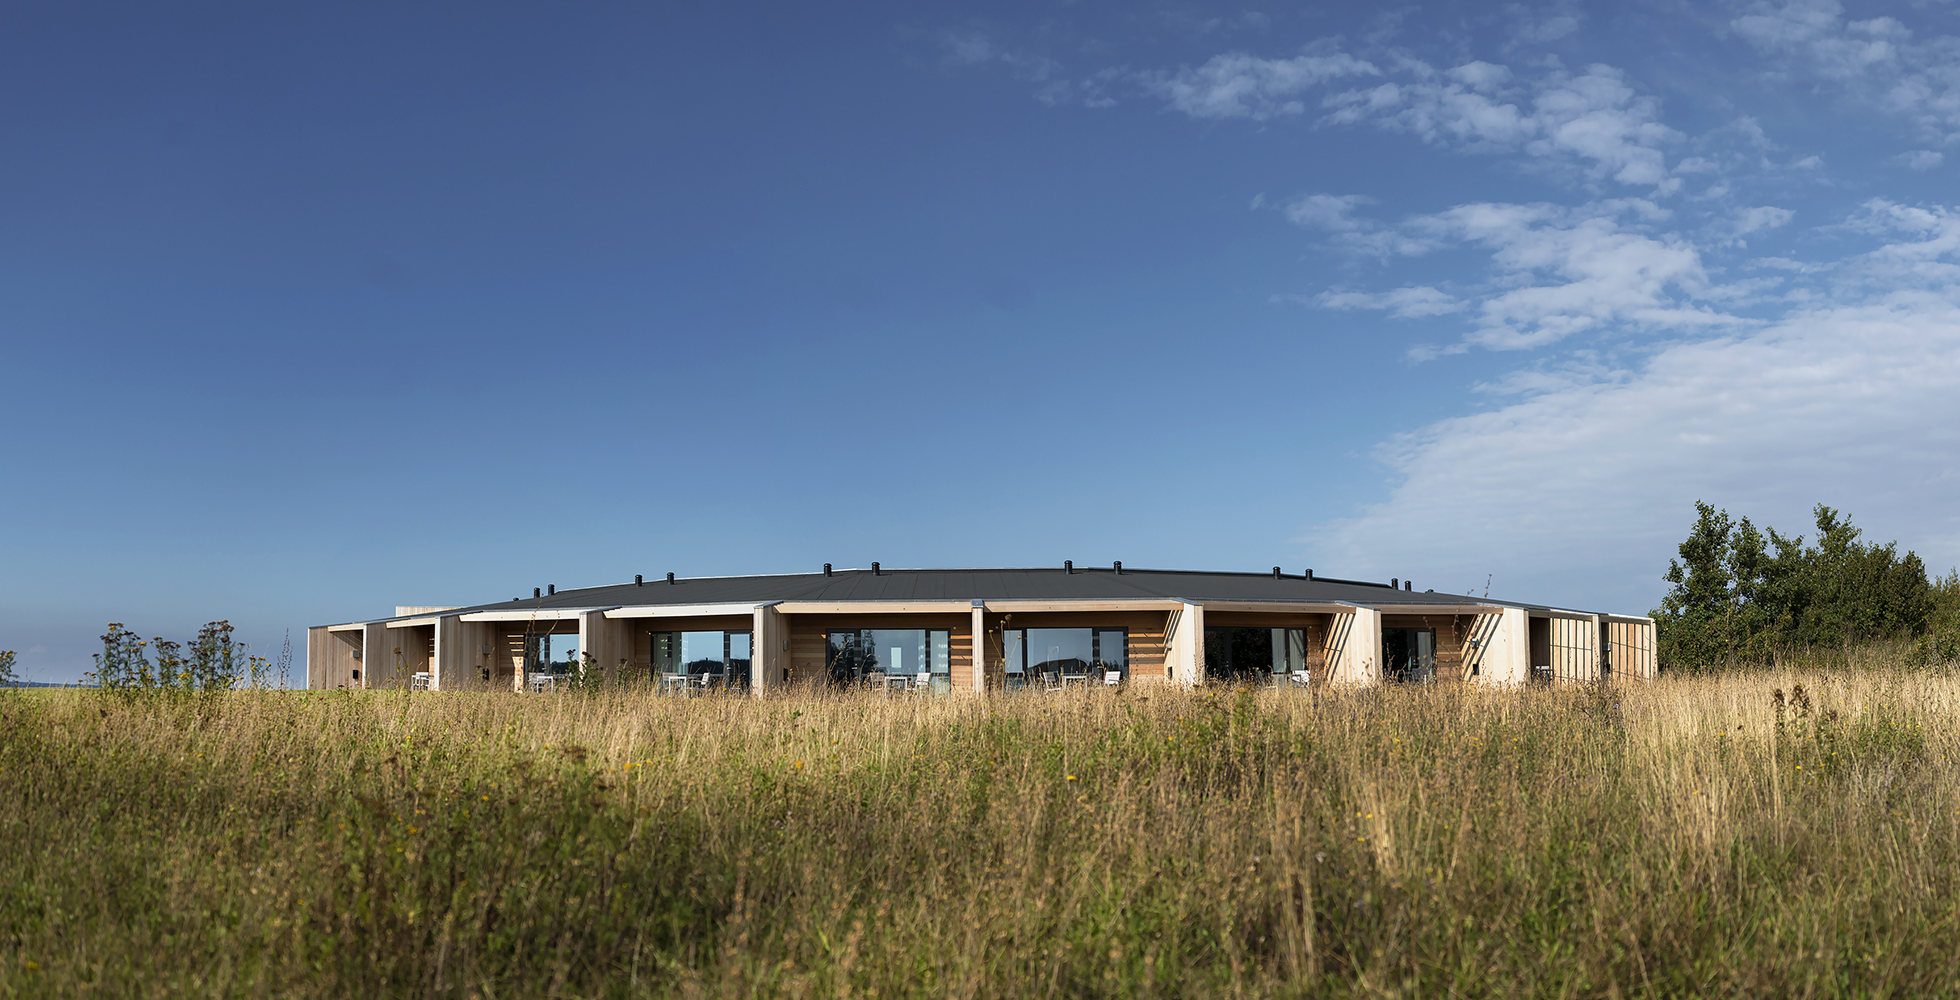 Photo of Musholm Holiday Centre by AART architects. Photo credit: AART architects